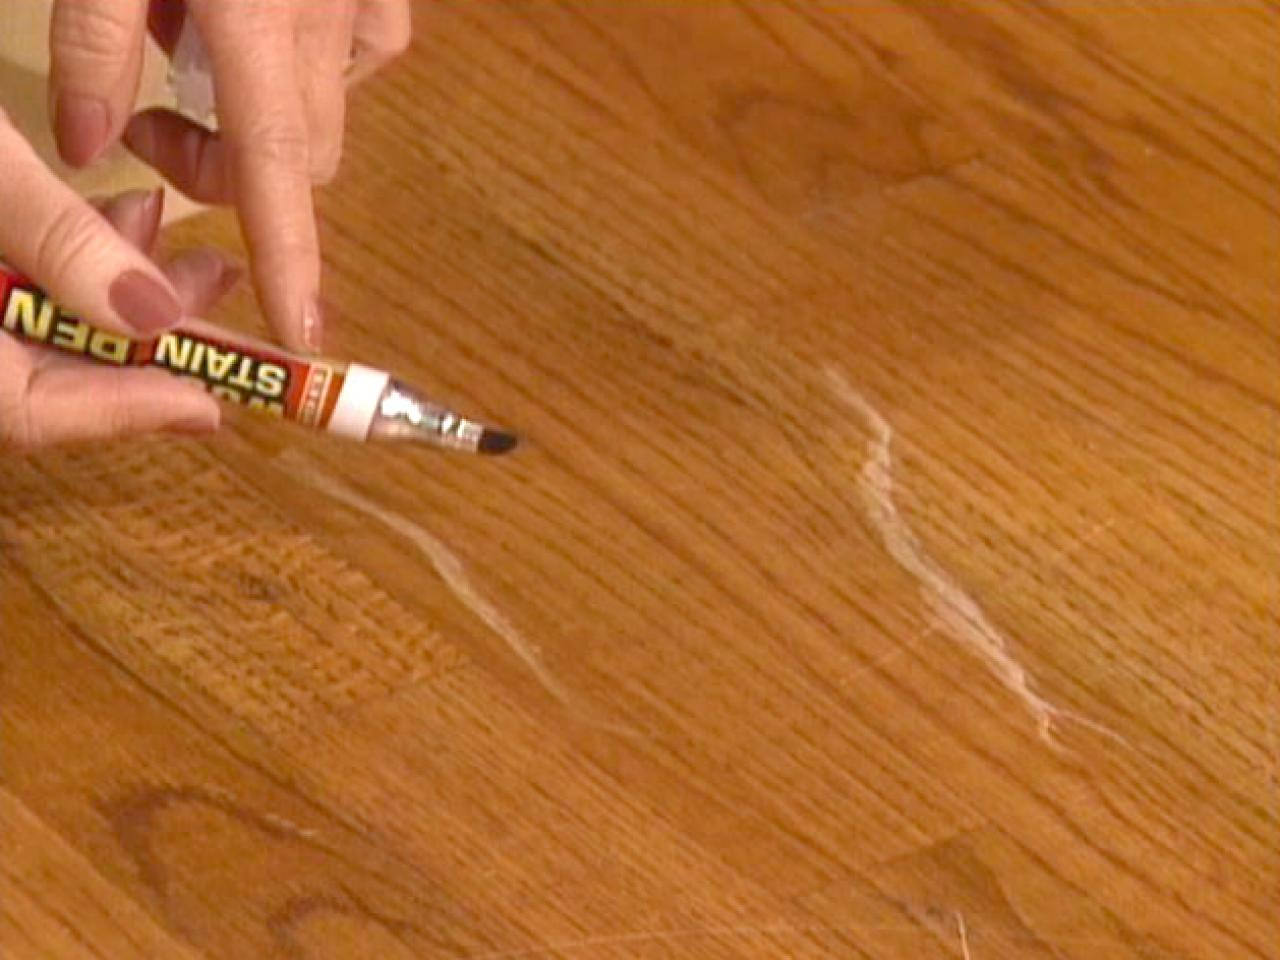 Hardwood Floor Scratch Repair how to repair scratches in a manufactured hardwood floor flooring tips Felt Tip Touchup Pen Uses Wood Stain For Scratches